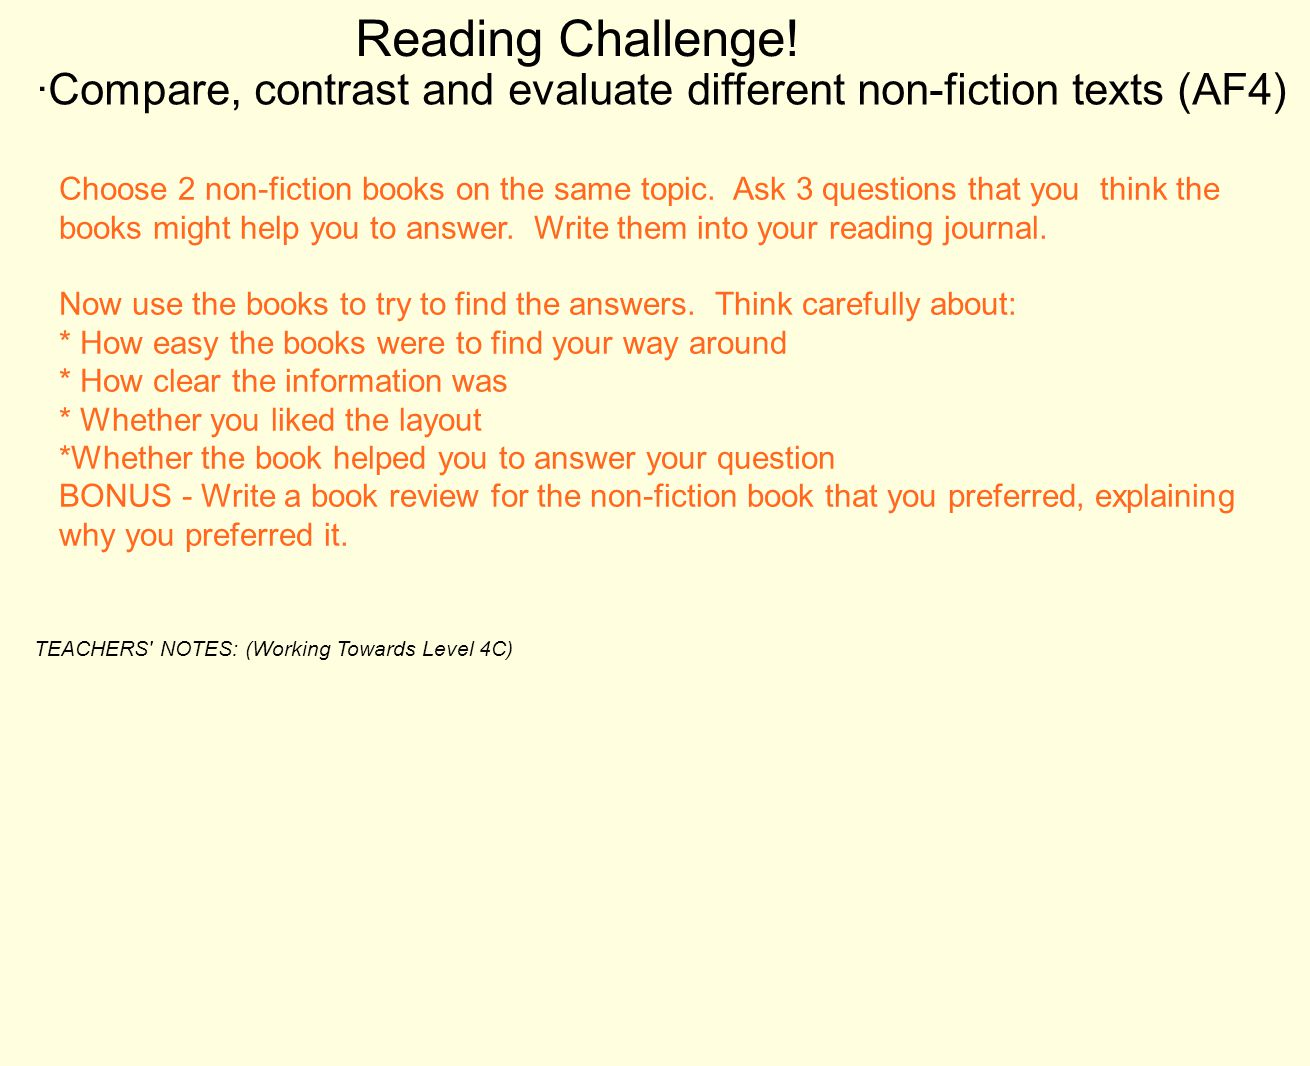 ·Compare, contrast and evaluate different non-fiction texts (AF4)